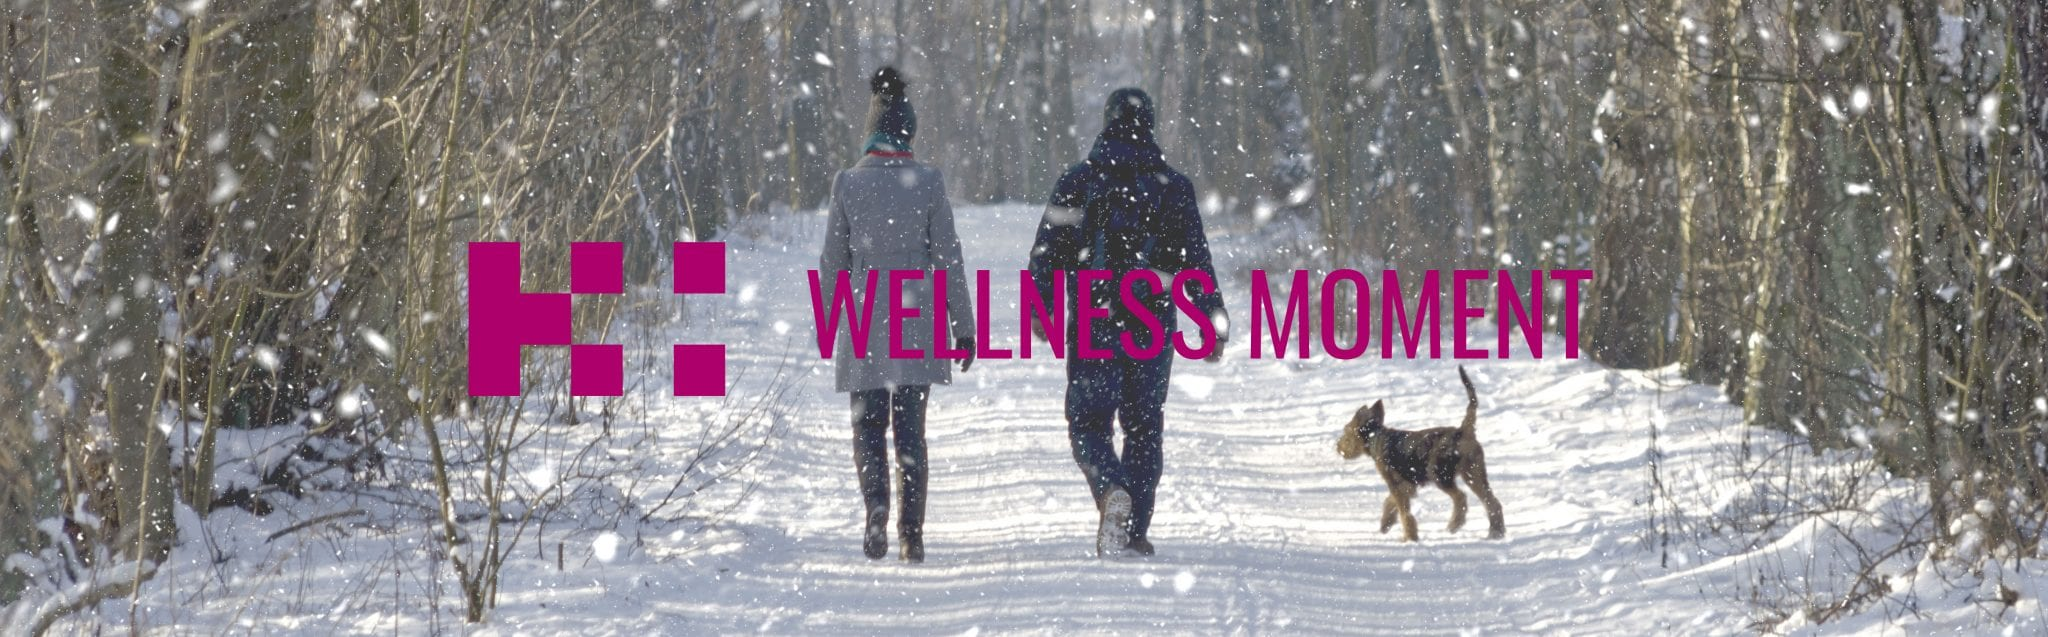 winter wellness - healthy holiday